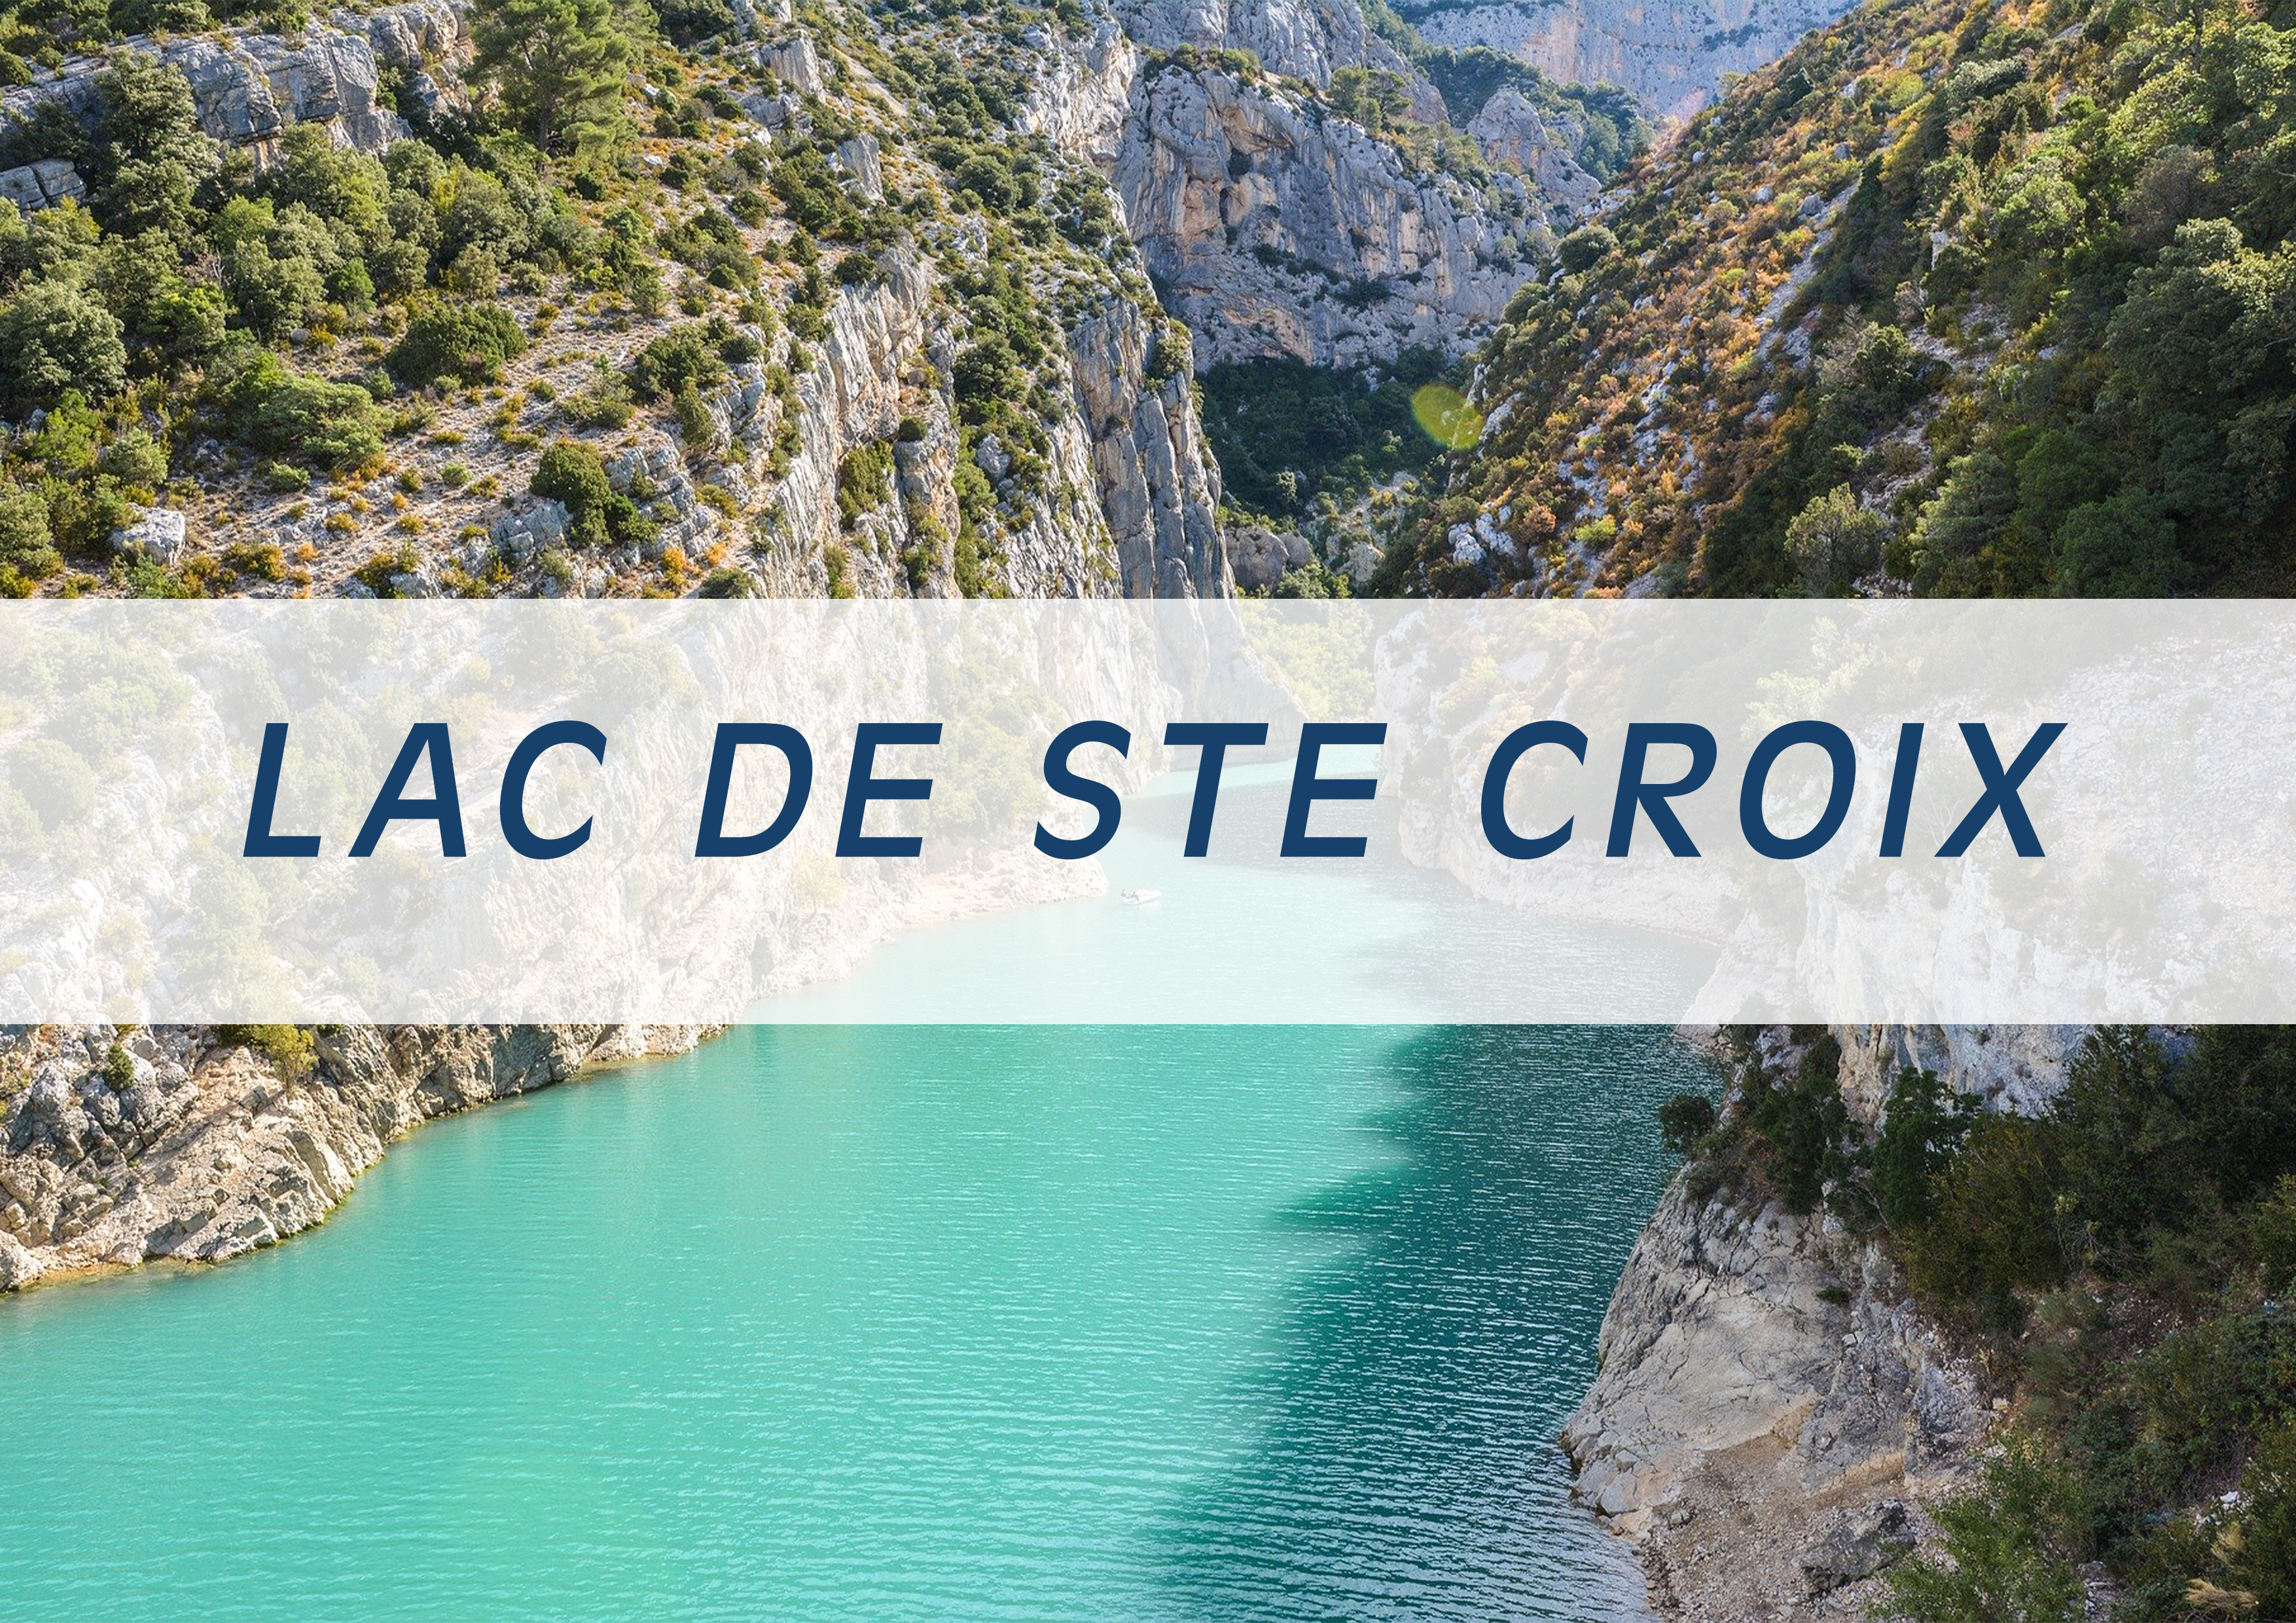 Overview of Lac de Sainte Croix - Heli Land & Sea - Heli Air Monaco